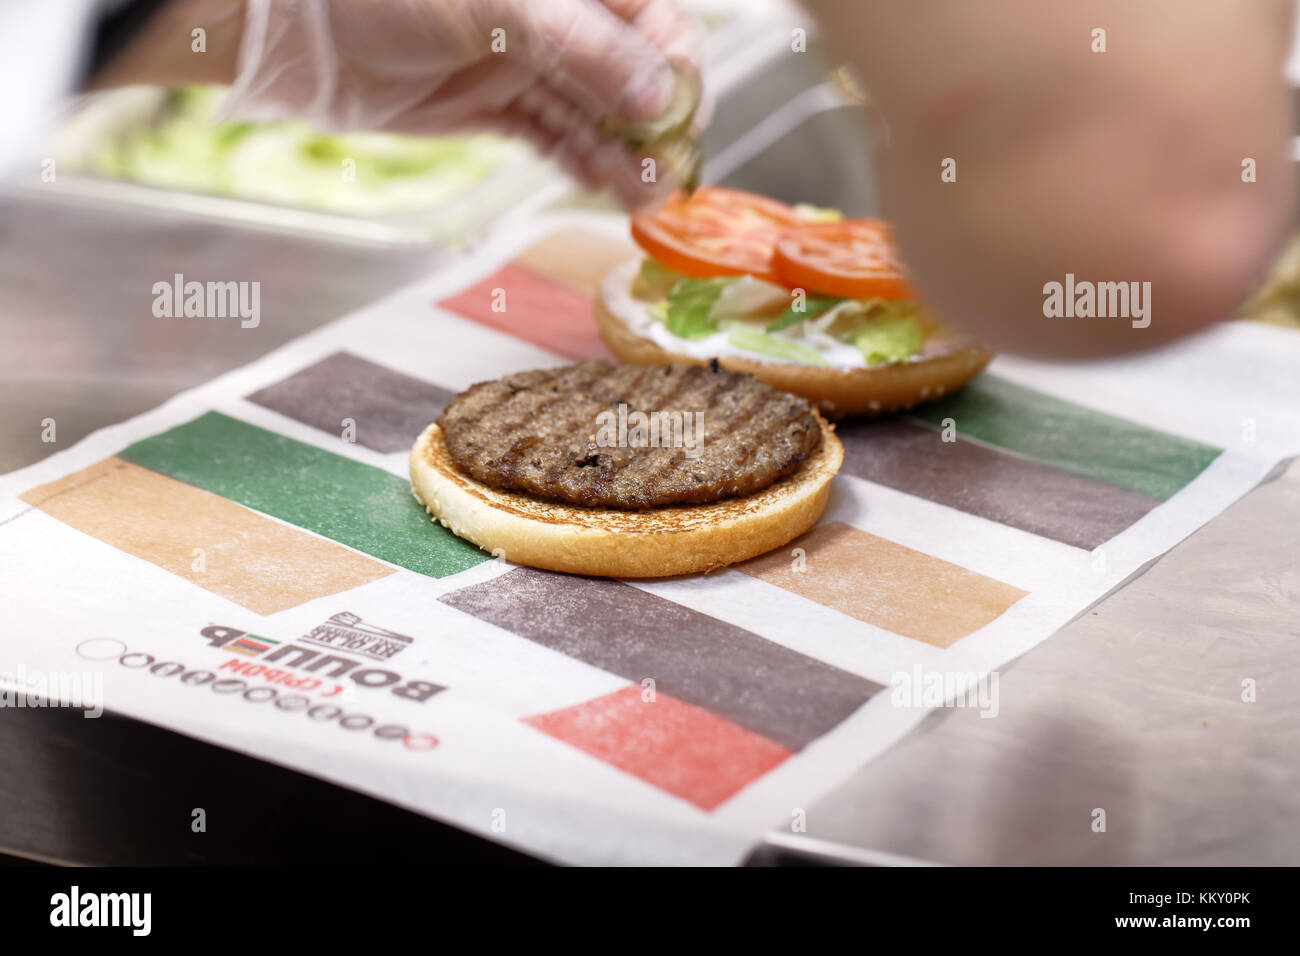 St. Petersburg, Russia - November 29, 2017: Staff preparing a Whopper in 500th Burger King restaurant in Russia - Stock Image